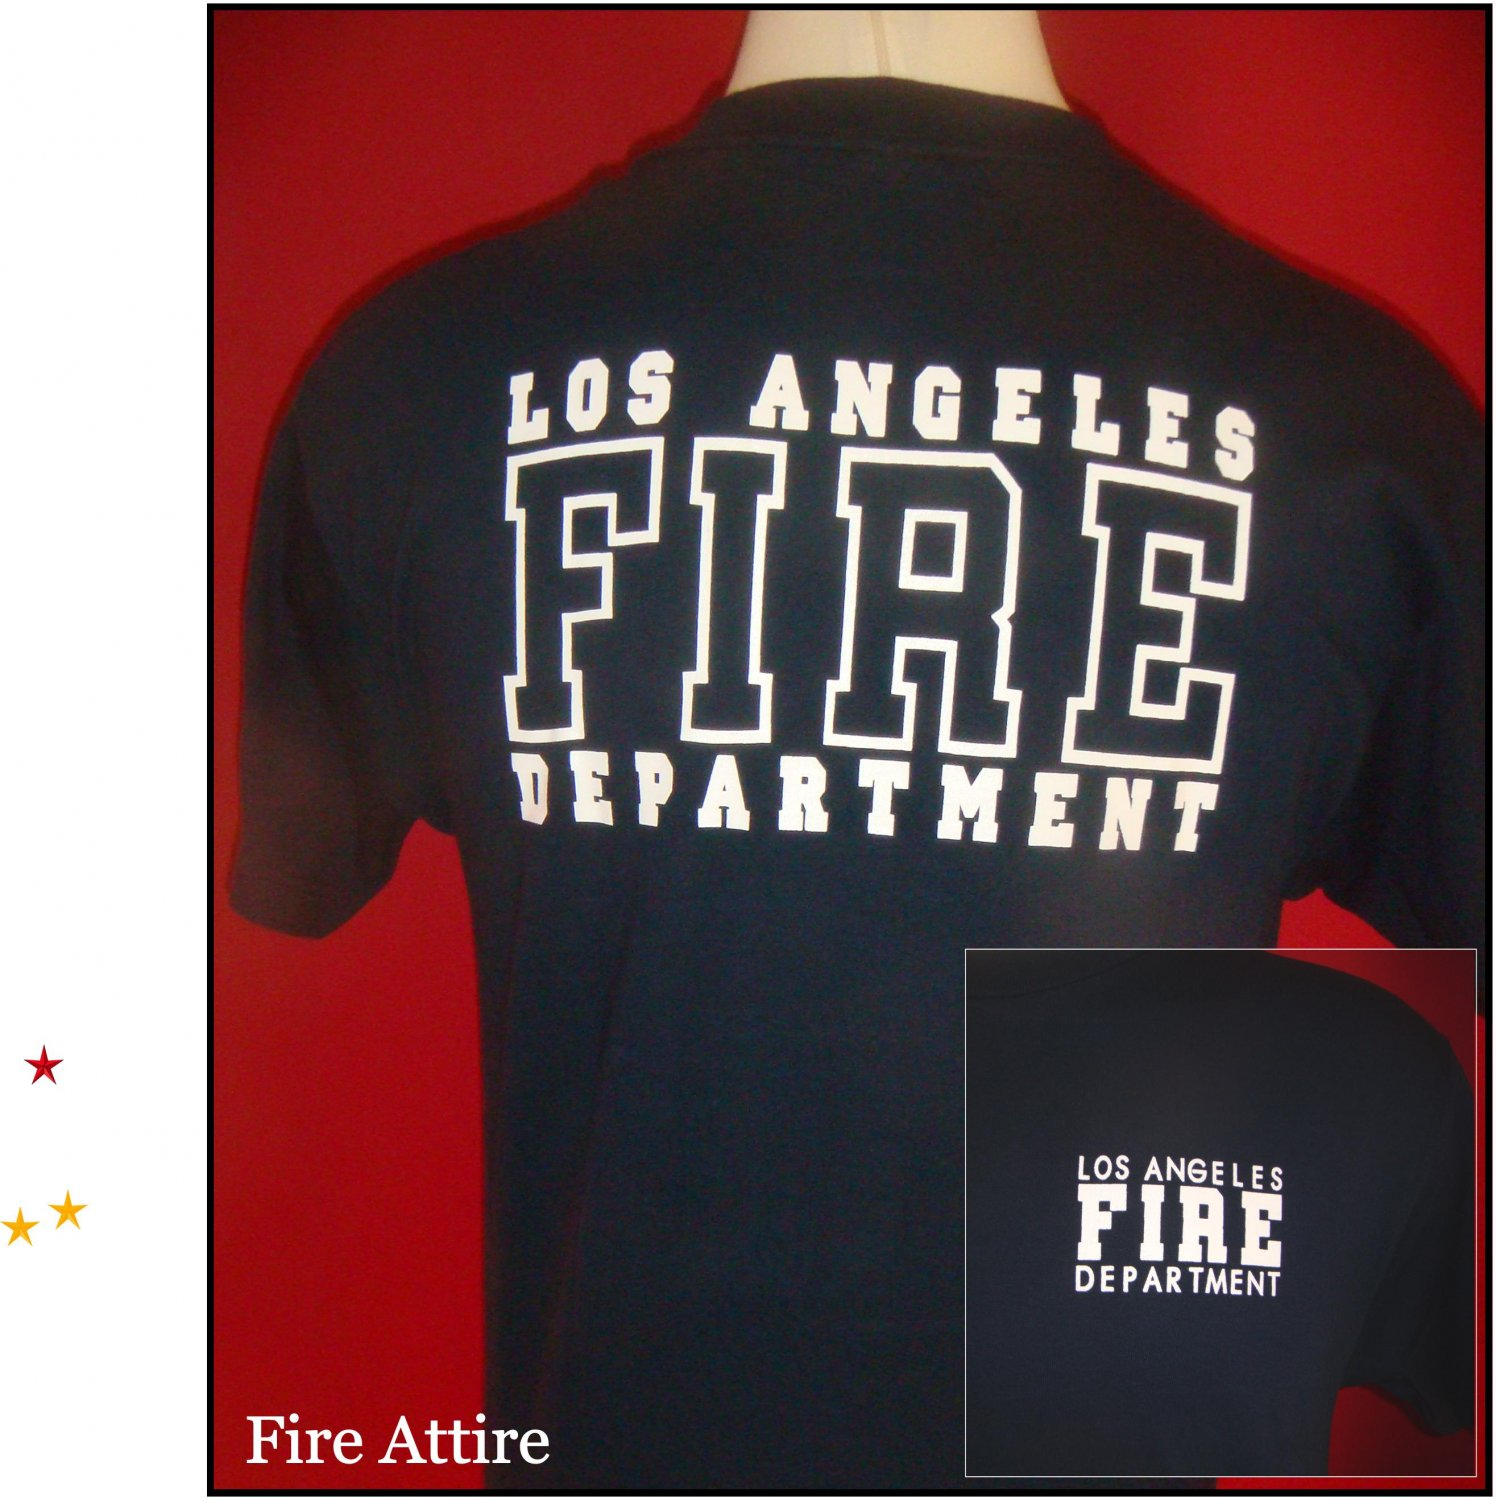 LAFD Uniform Shirt  Size 2XL